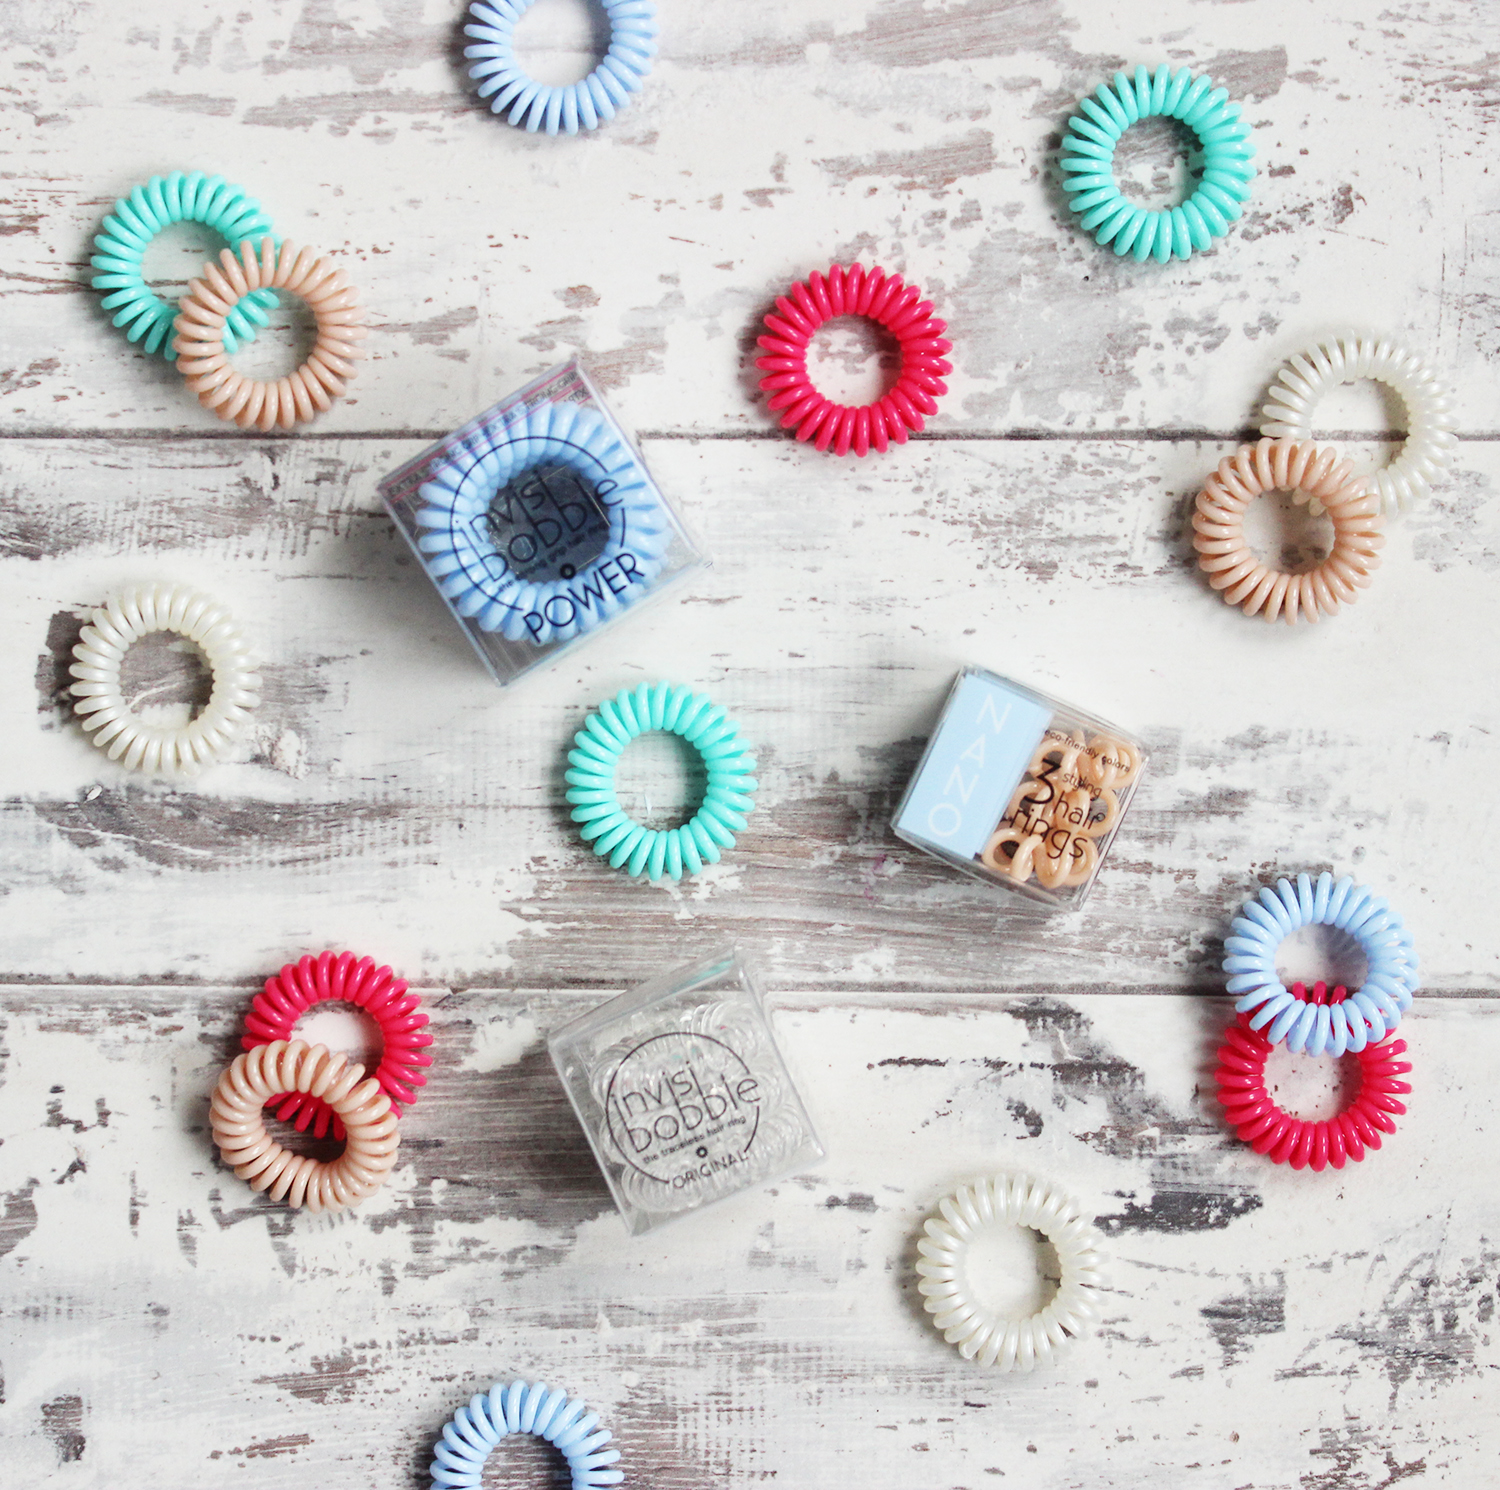 Invisibobble spring launches - Power and Nano